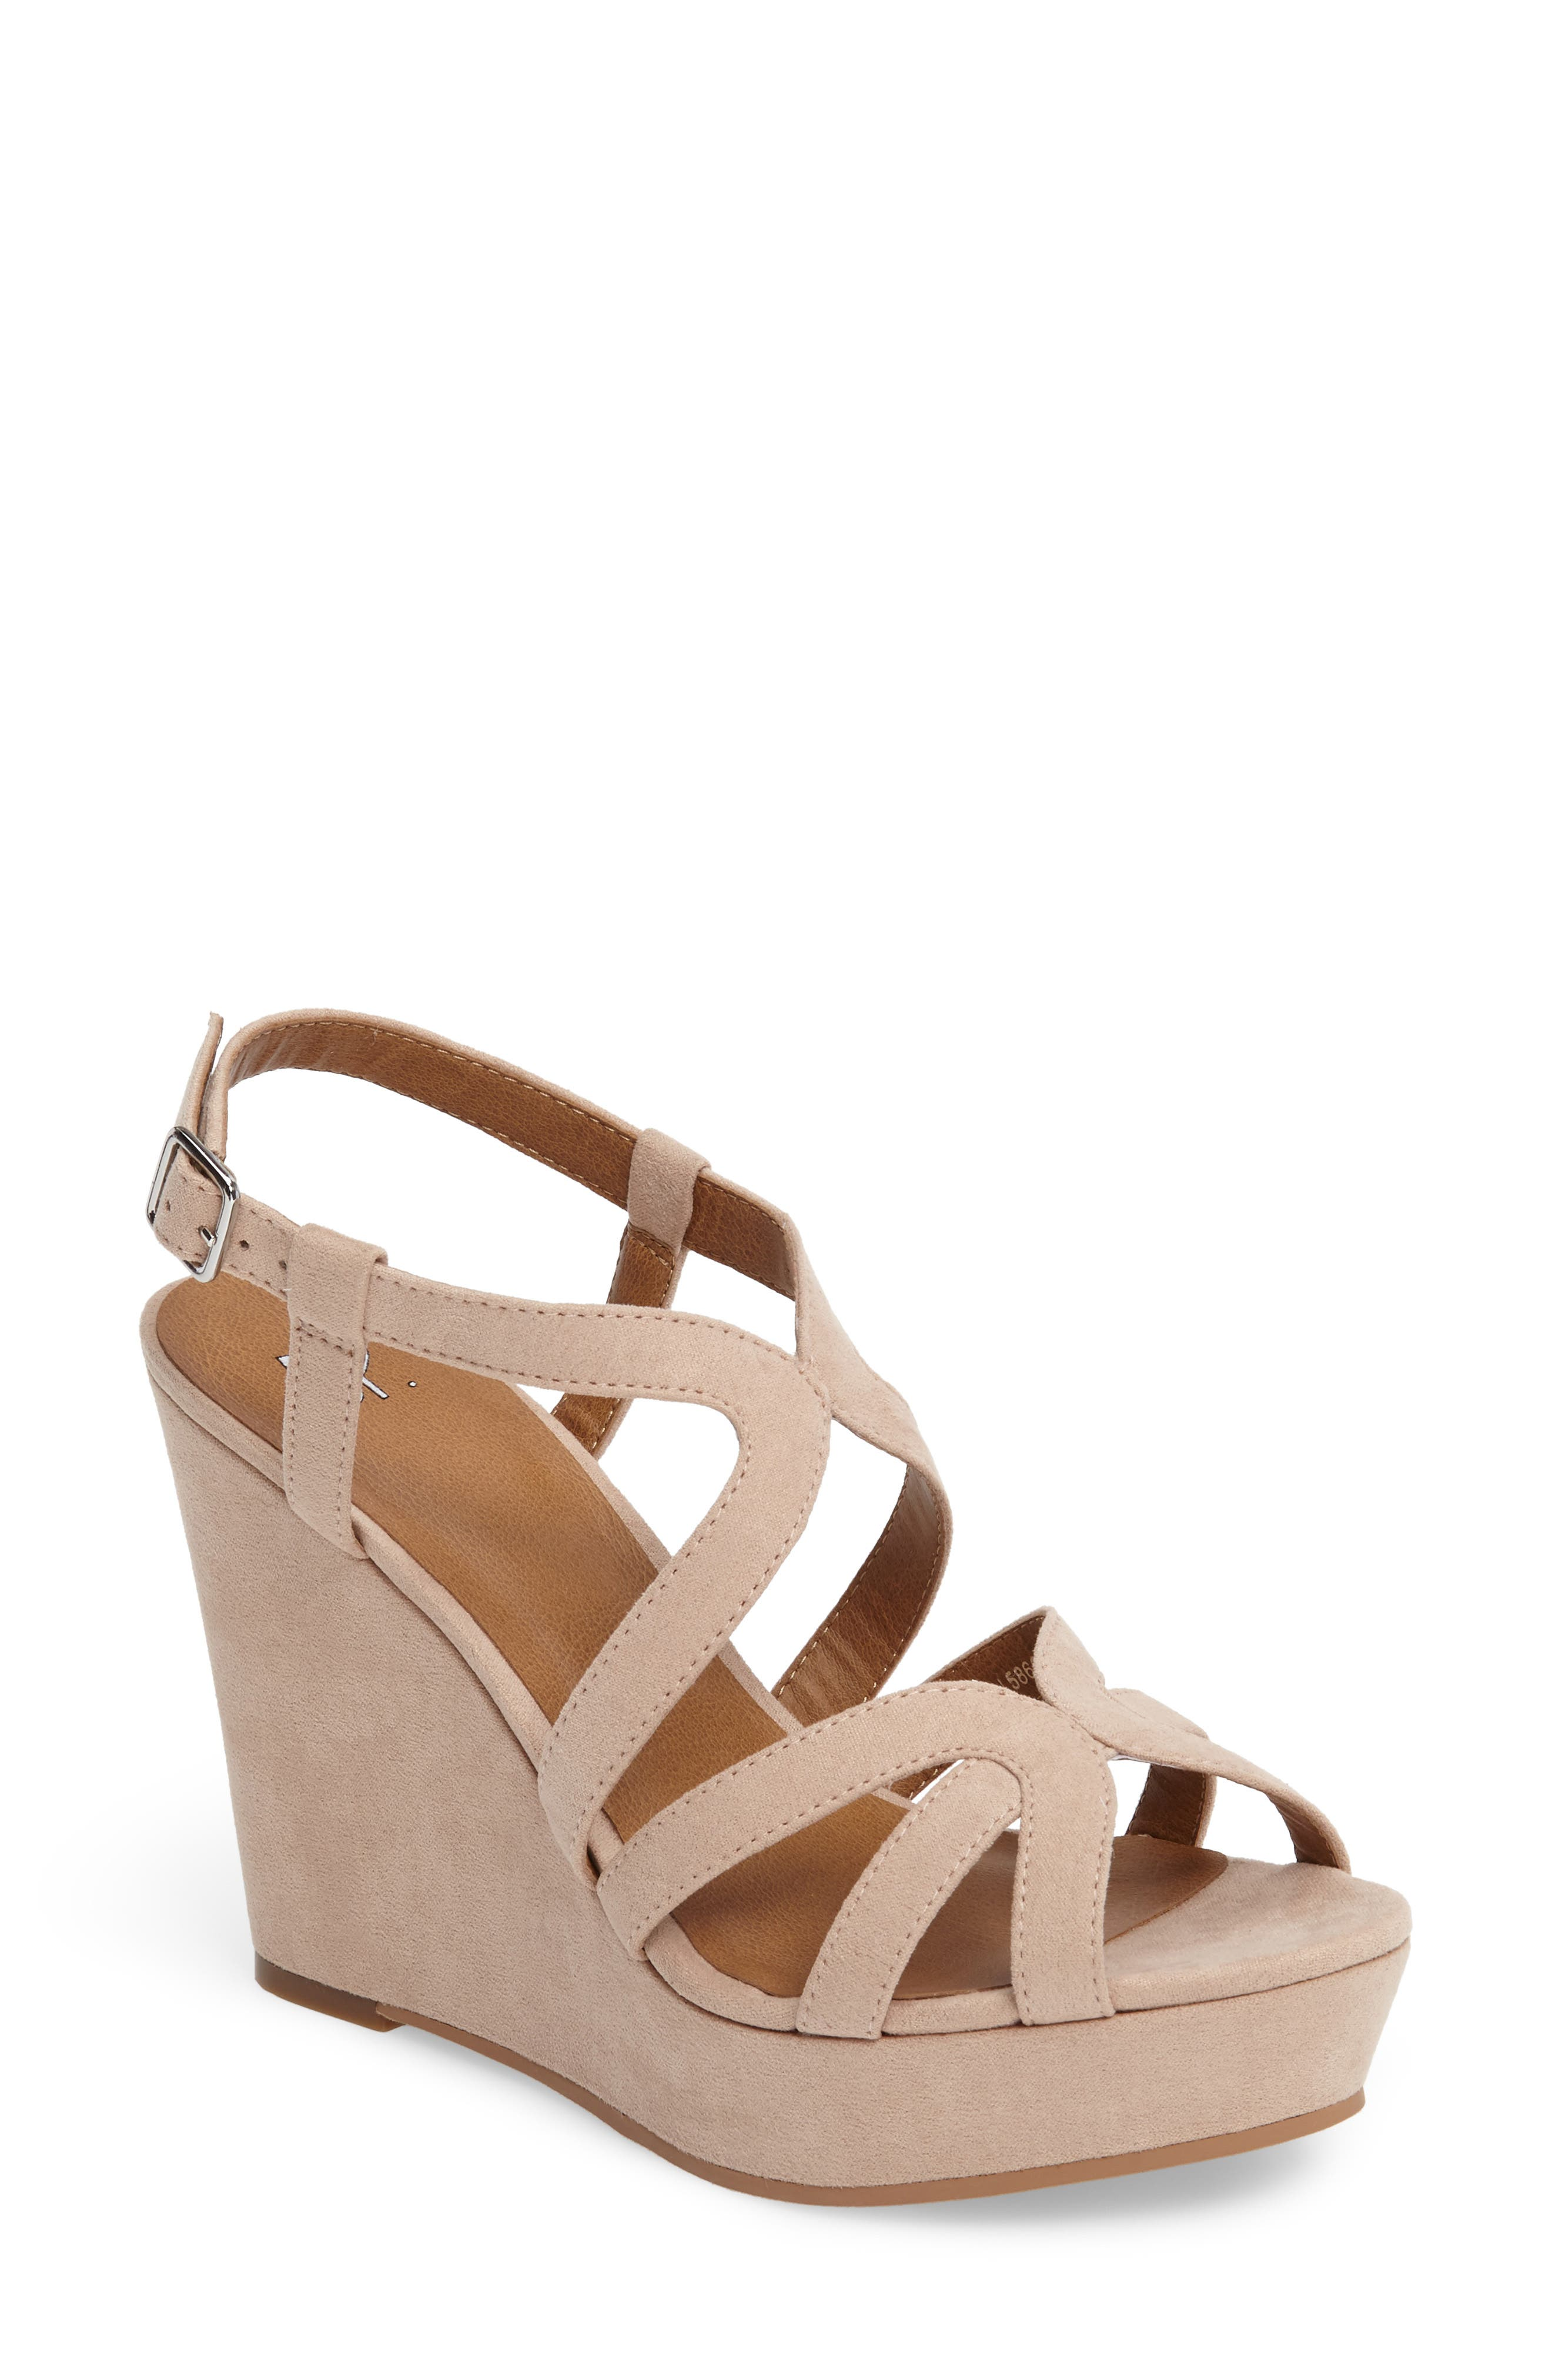 Main Image - BP. Sky Wedge Sandal (Women)